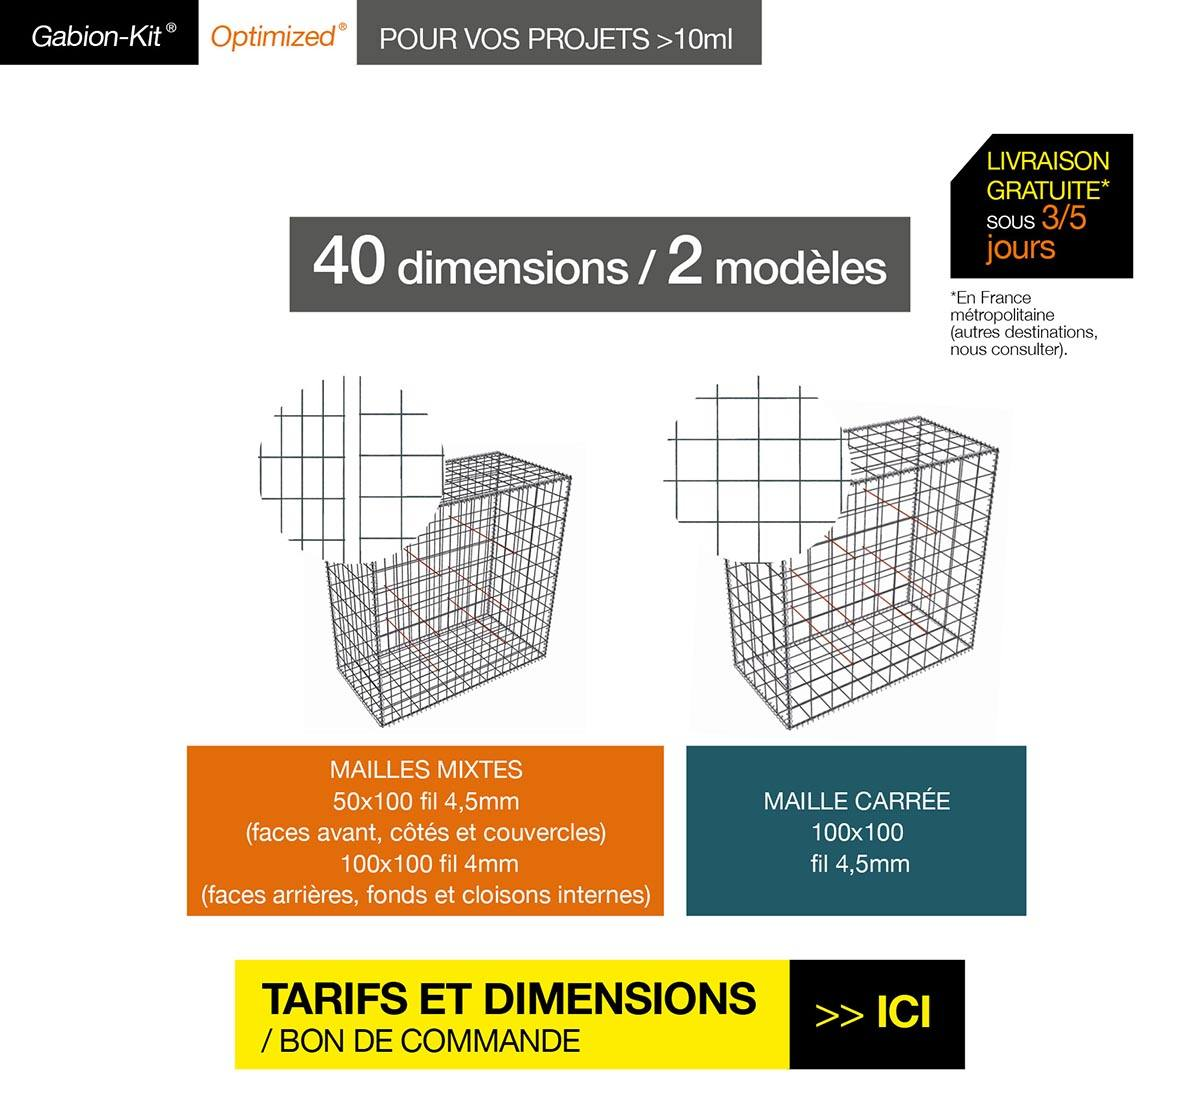 Le Gabion-Kit® Optimized® : Murs de soutènement